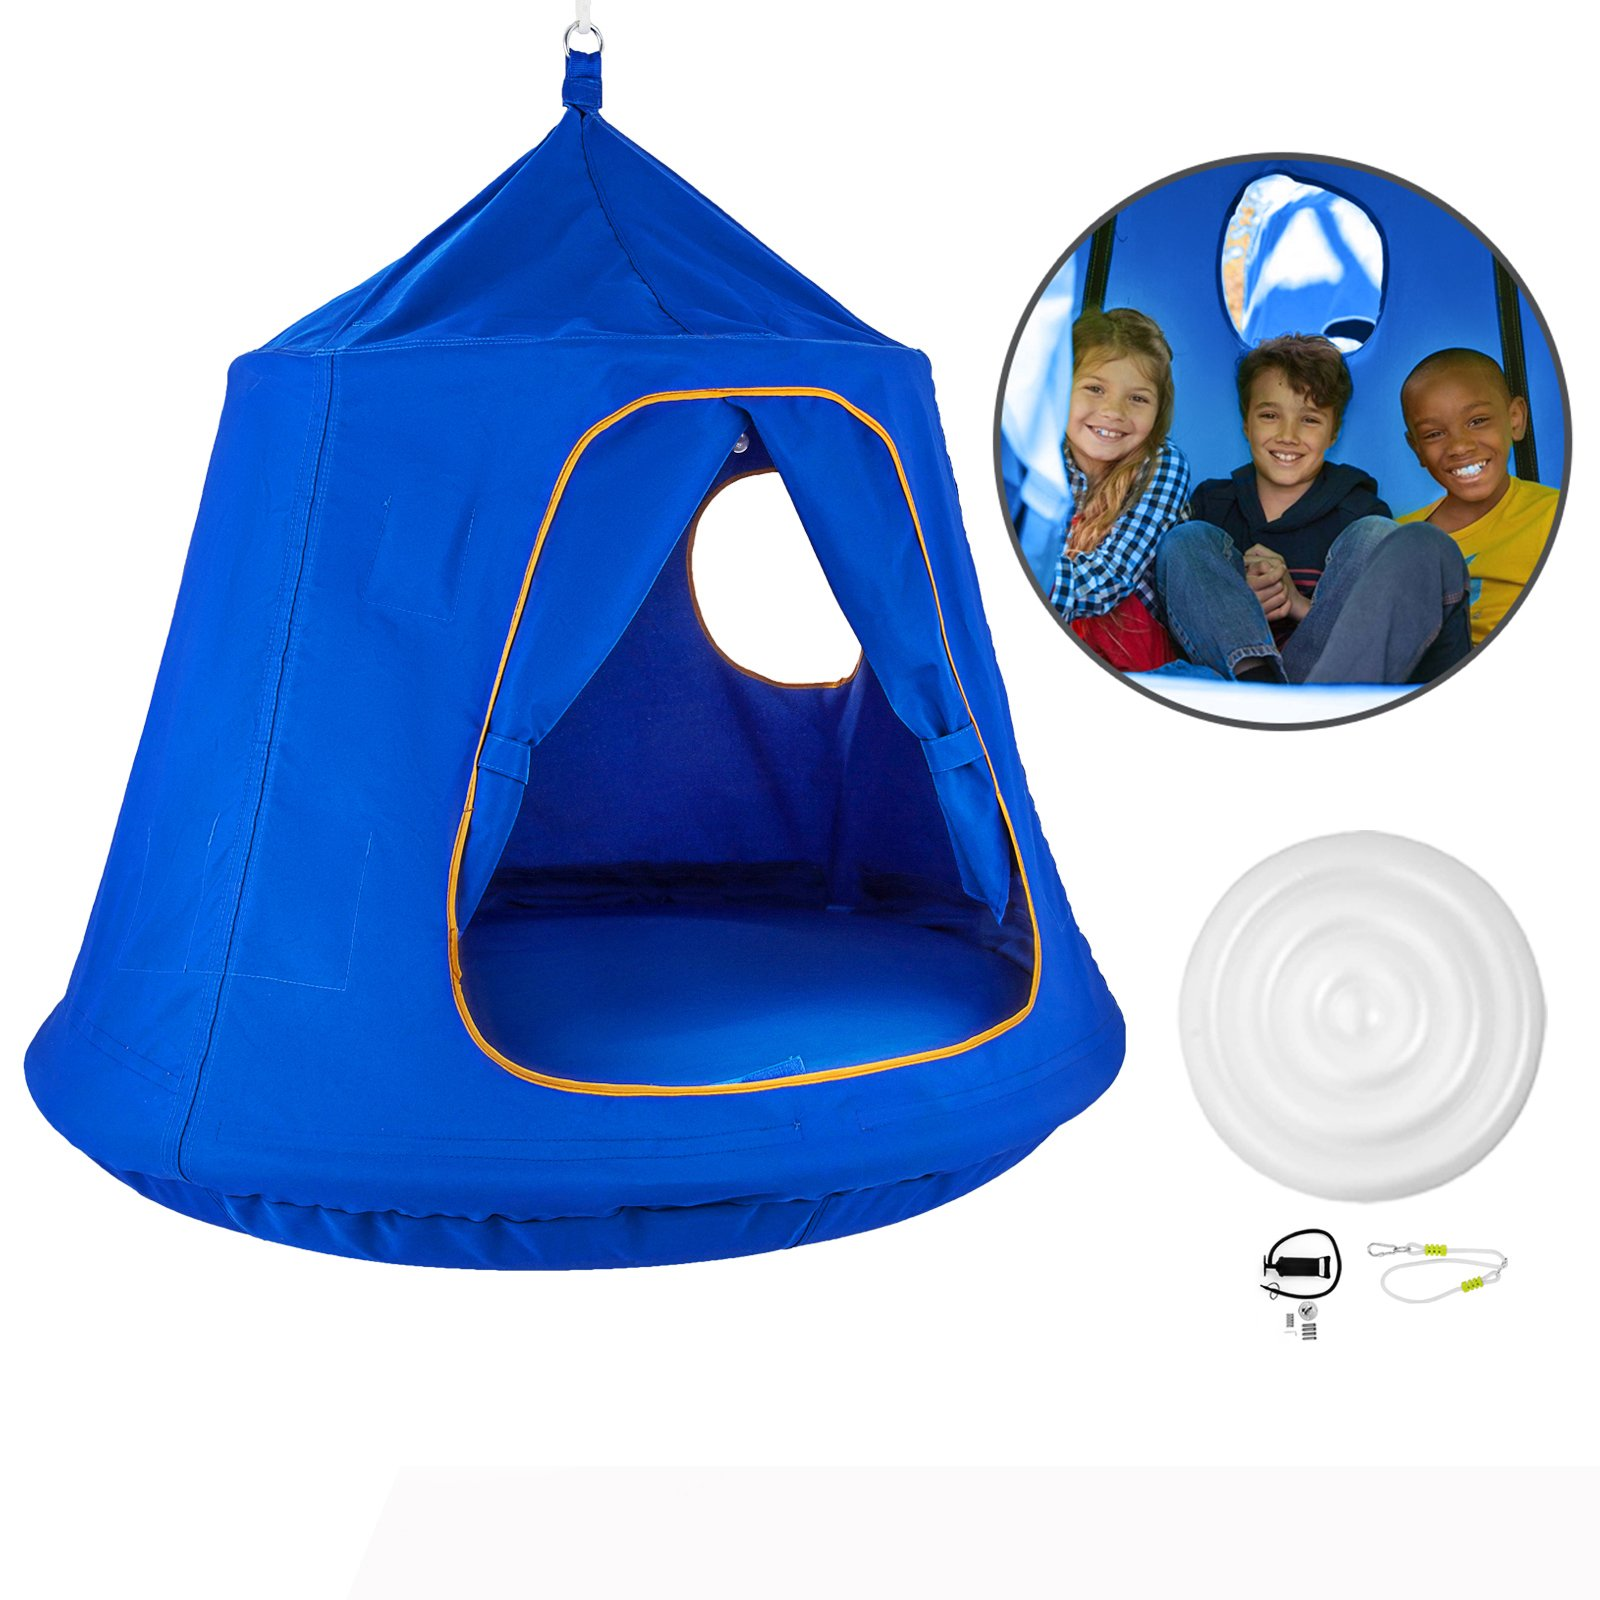 Mophorn Hanging Tree Tent 45 diam x 54 H Hanging Tent Swing Tent Waterproof Hanging Tree&Ceiling Hammock Tent Green Kids Outdoor Tents Playhouses (Blue) by Mophorn (Image #9)